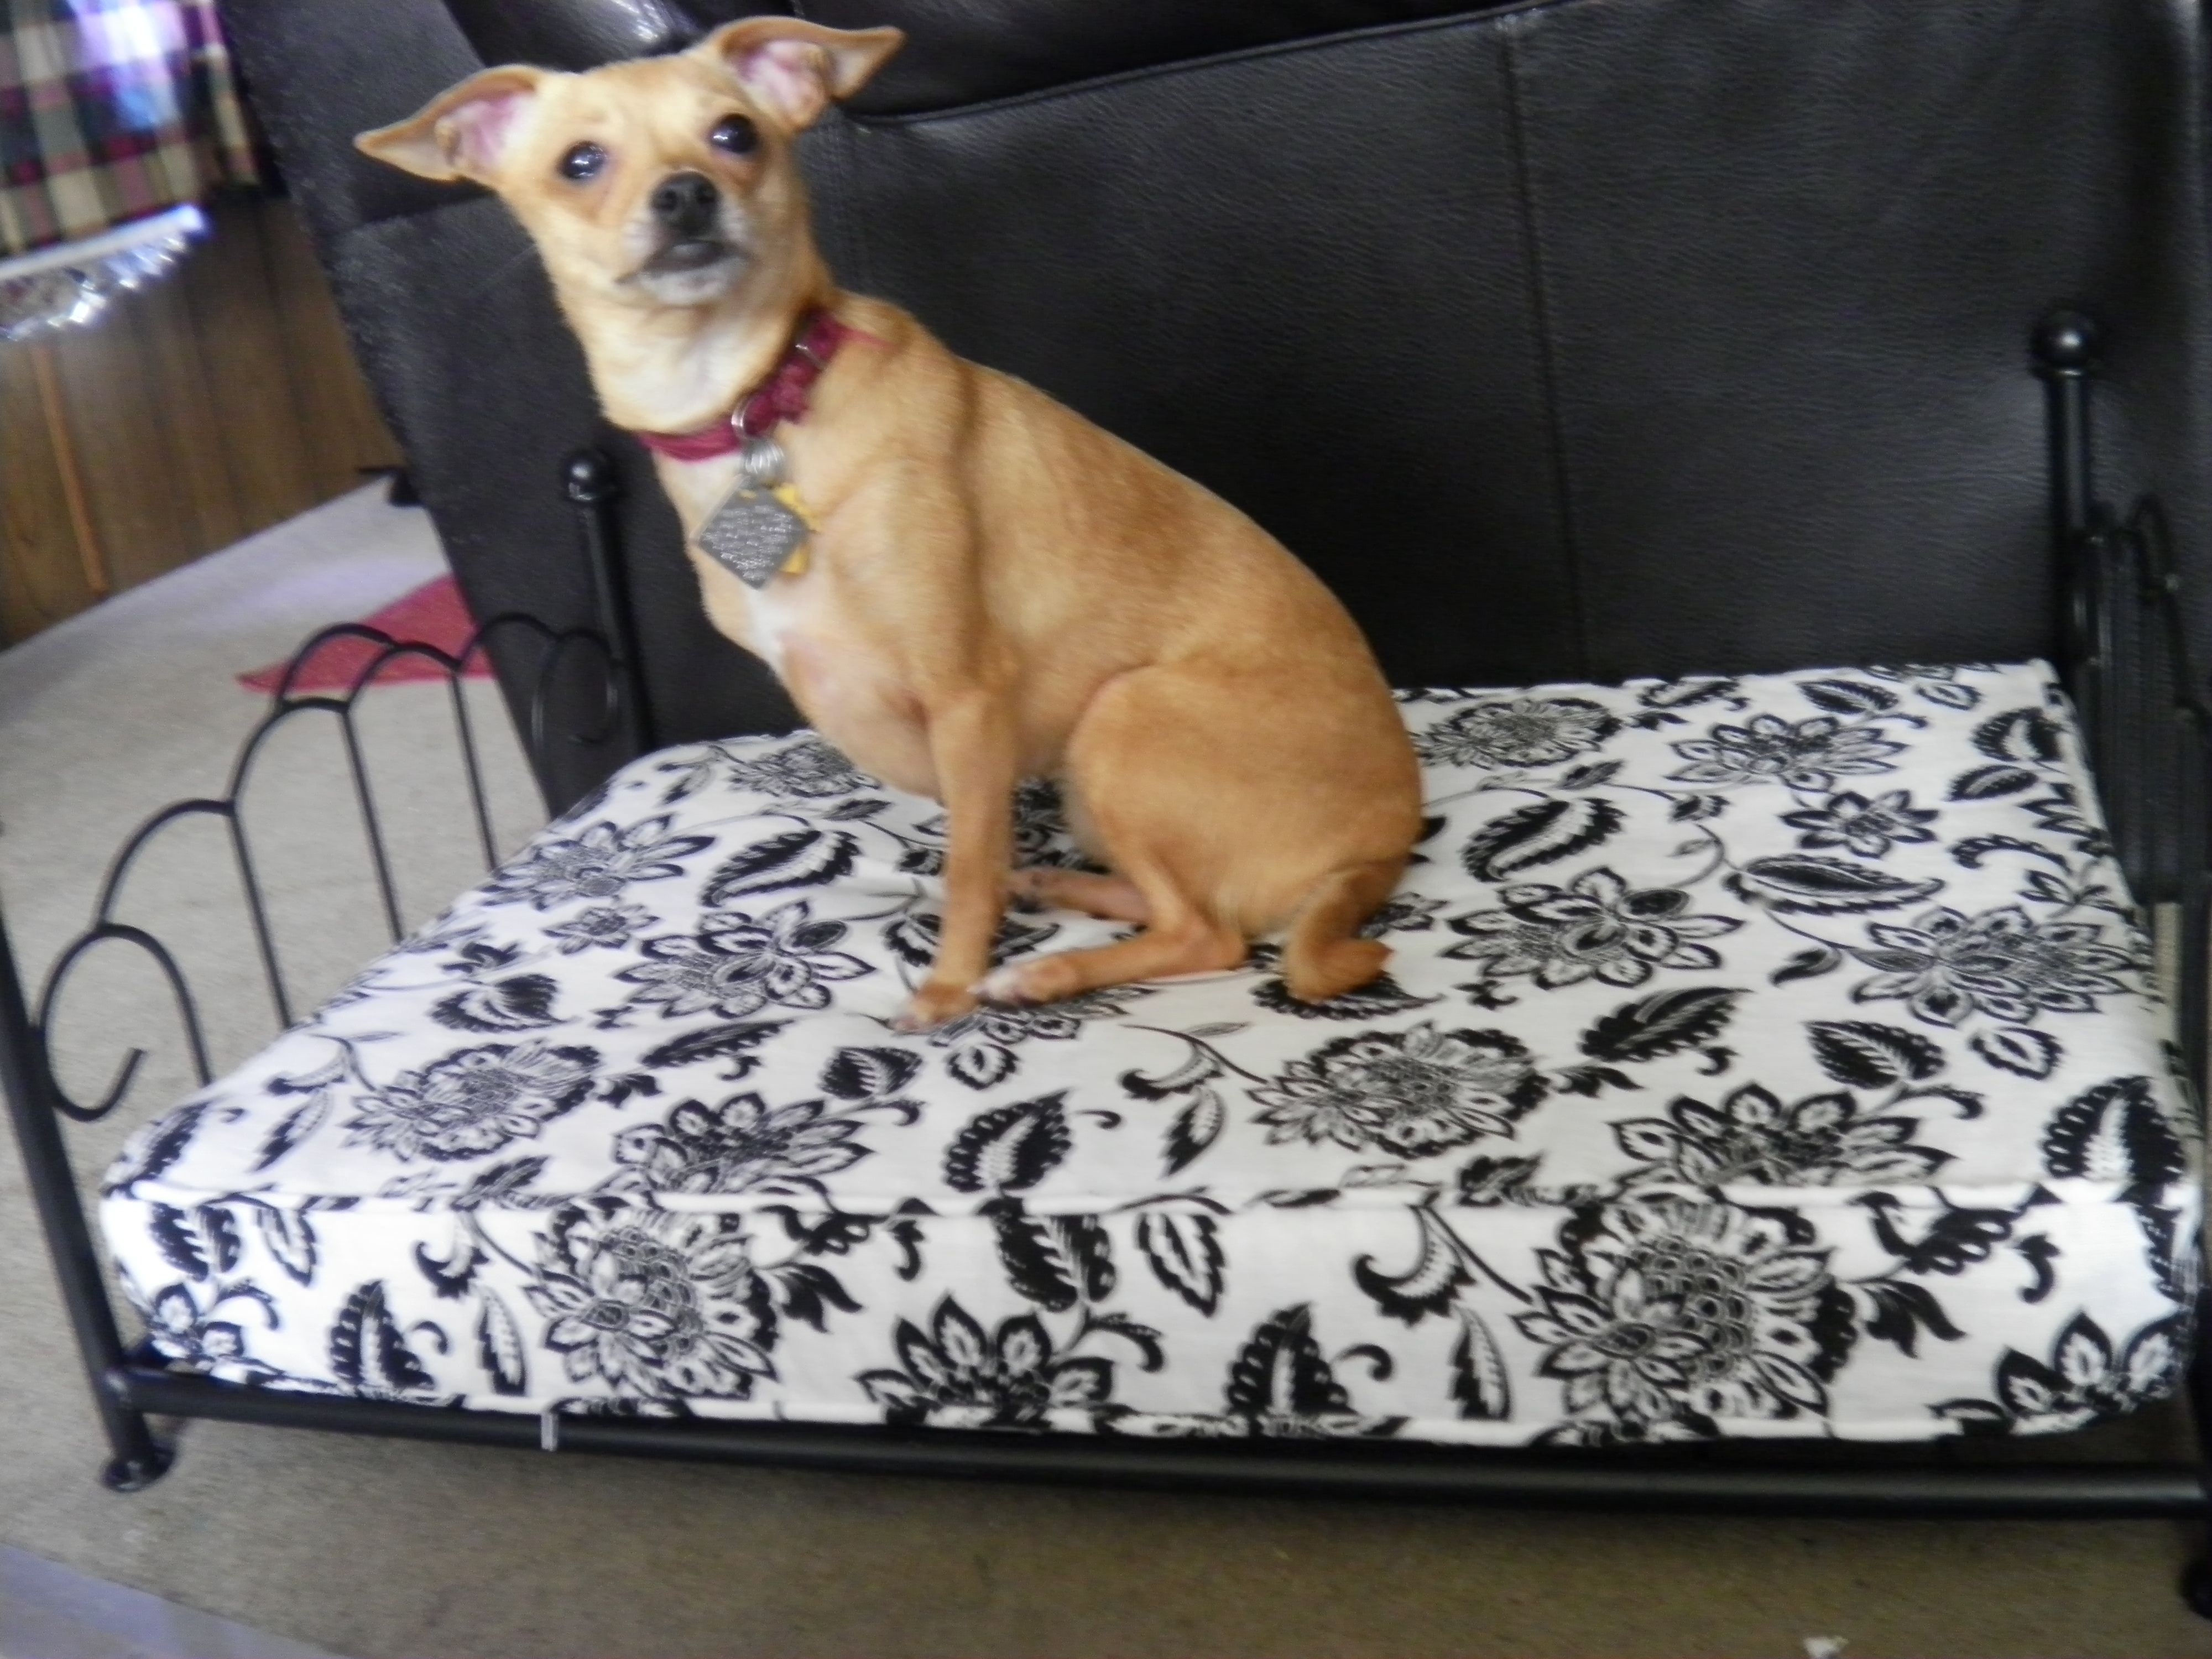 Lulu won the bed that was selected for Bo's adoptive housemate.